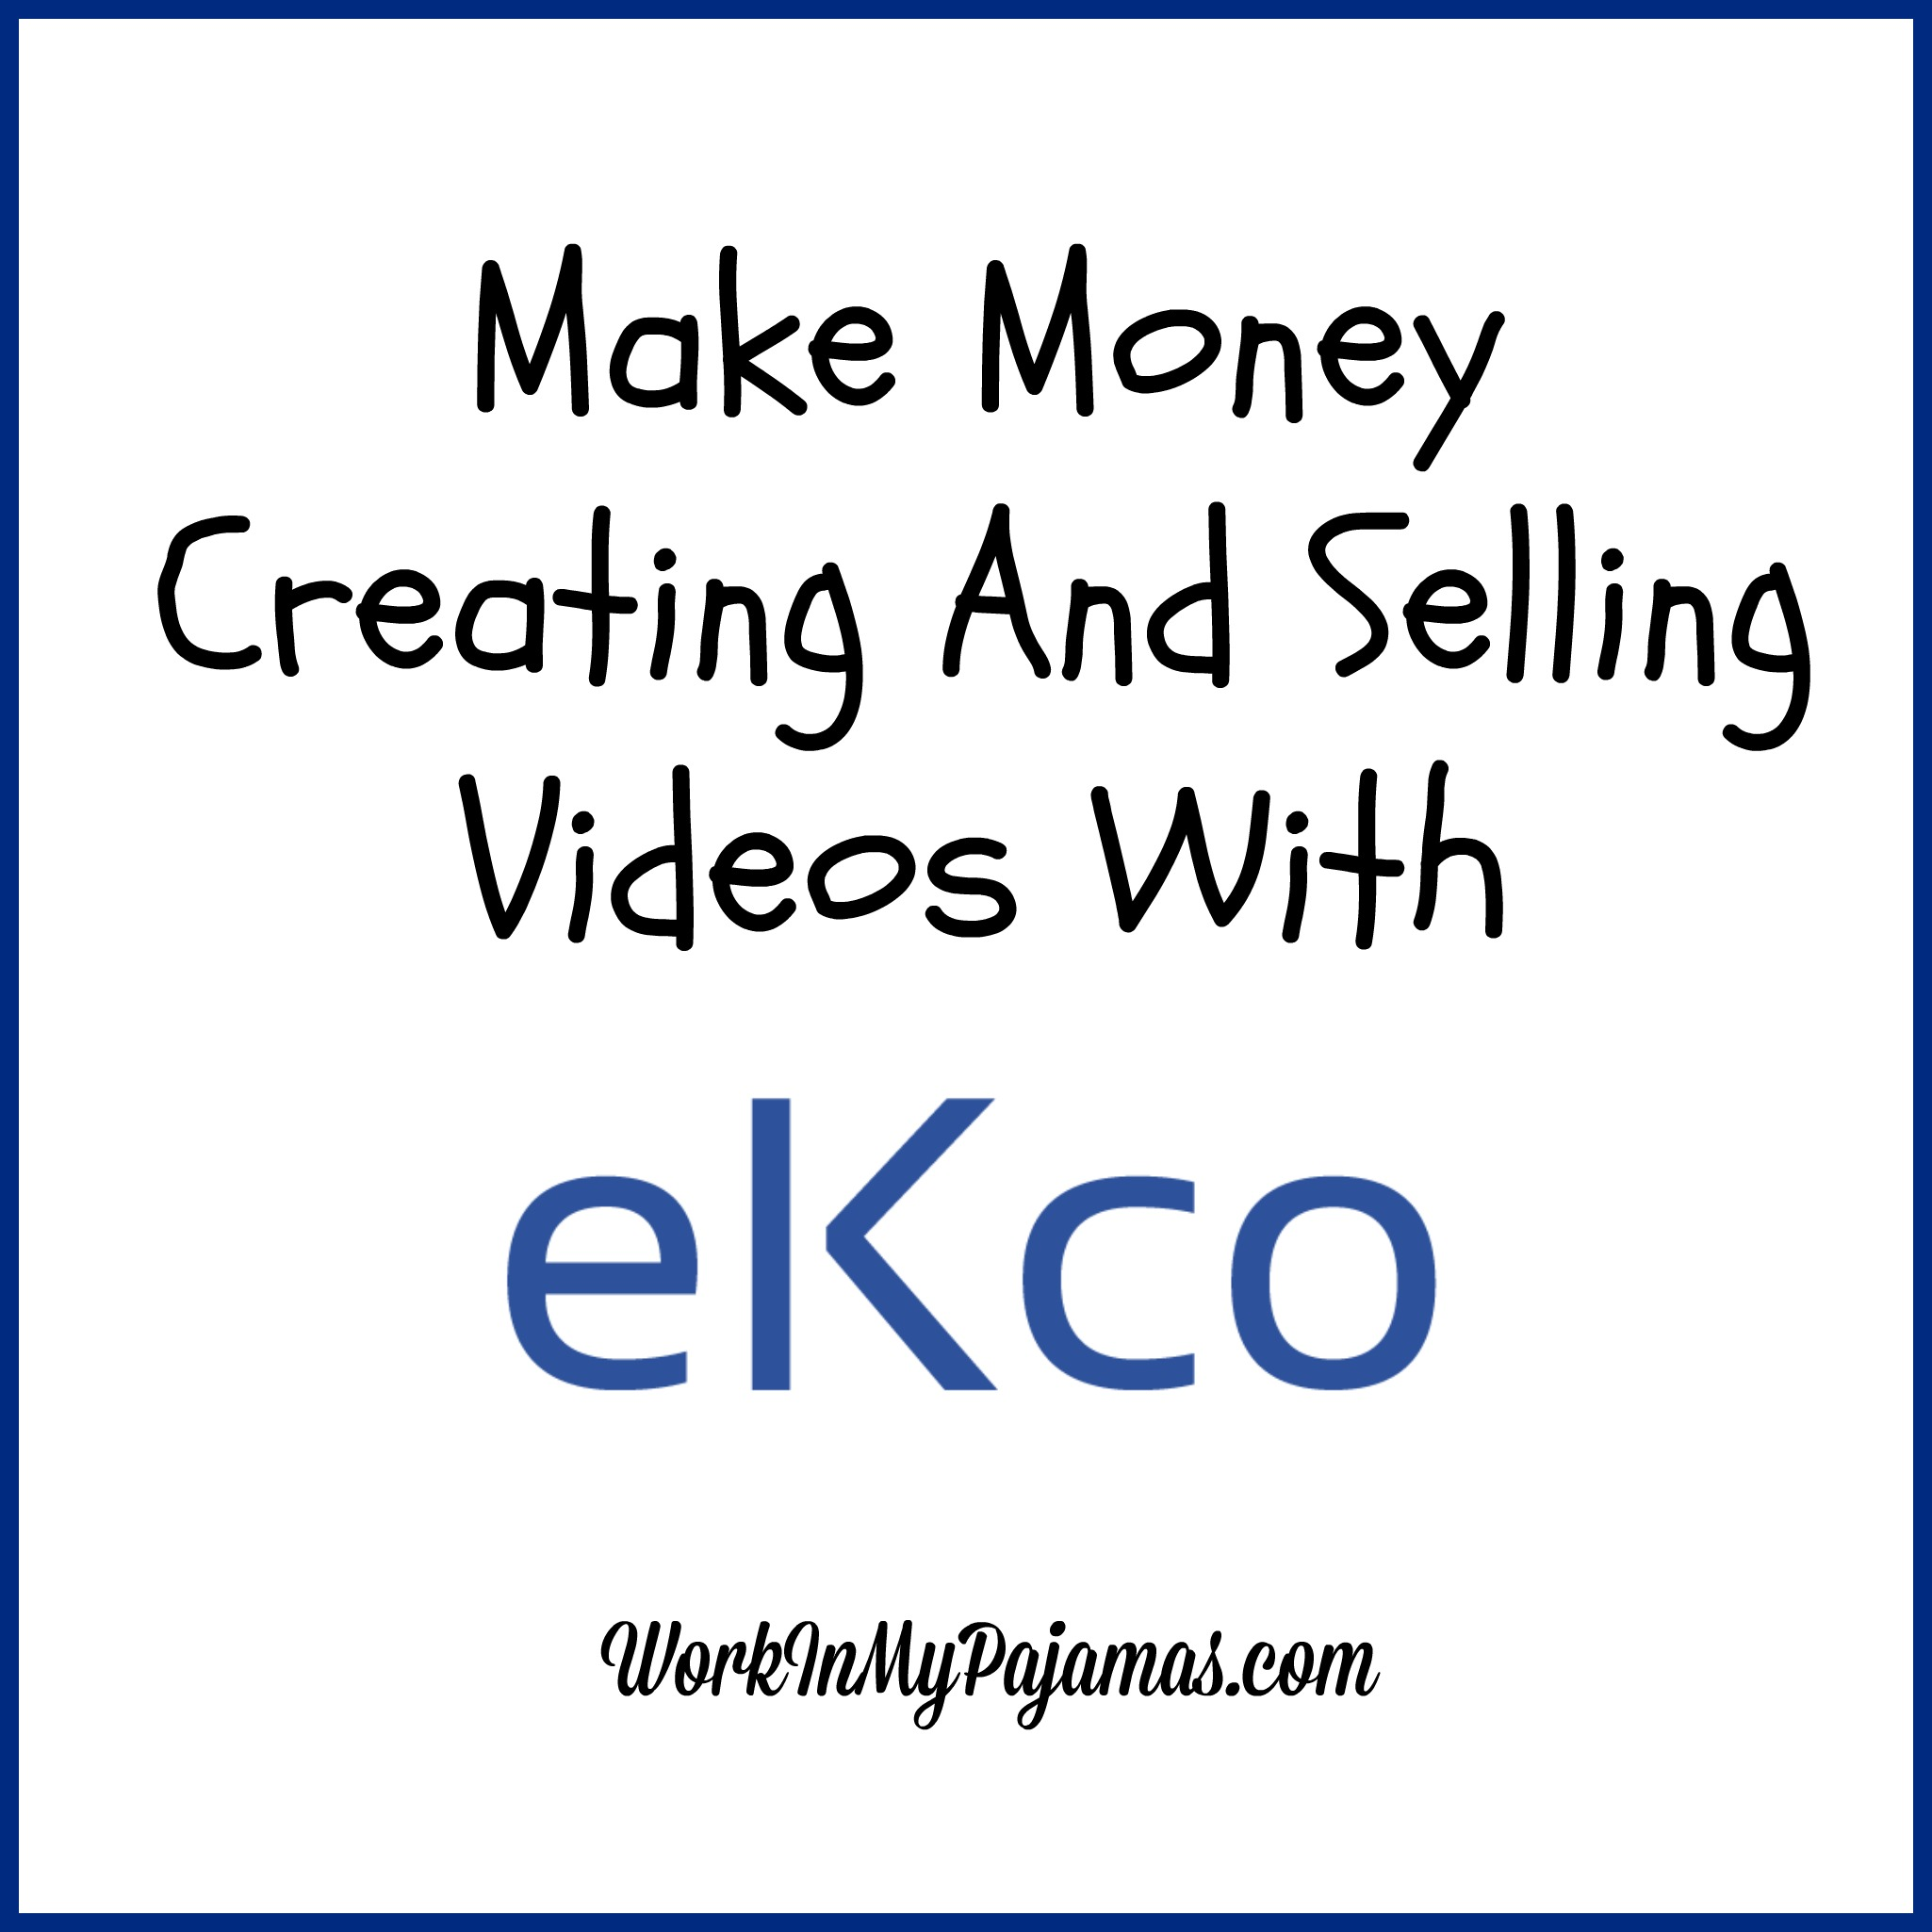 Make Money Creating And Selling Videos With eKco